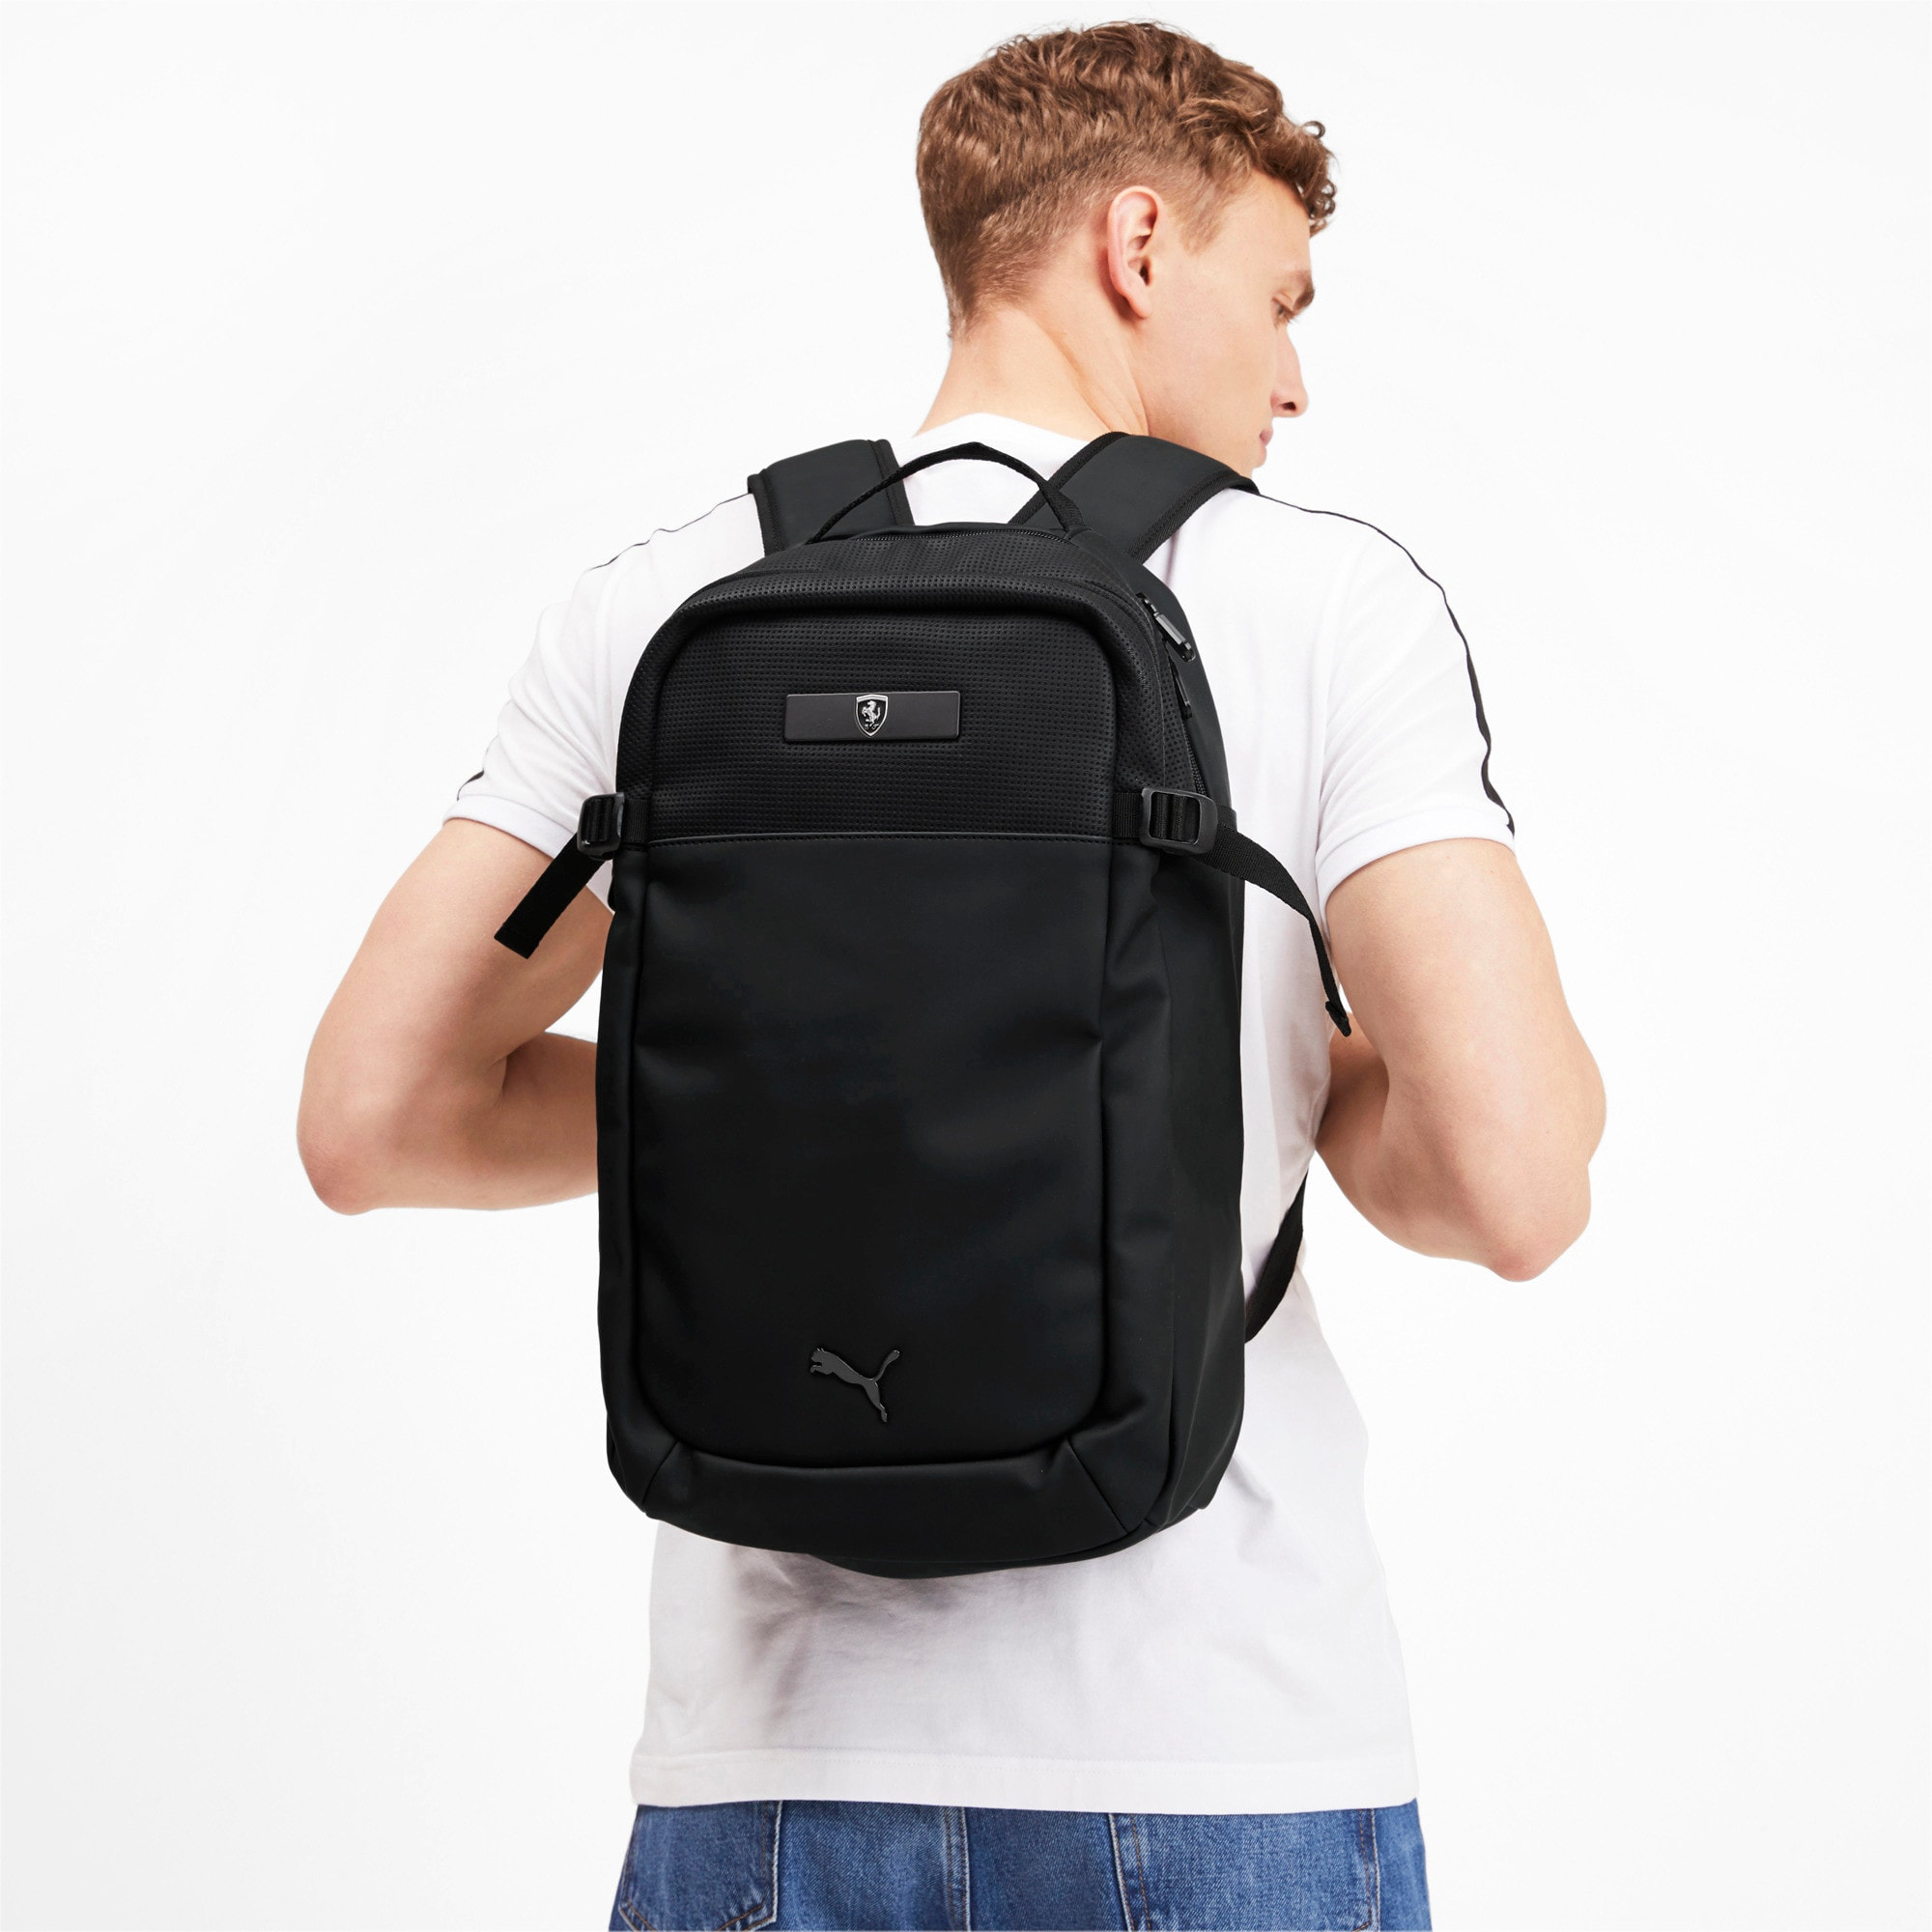 Thumbnail 2 of Ferrari Lifestyle Backpack, Puma Black, medium-IND